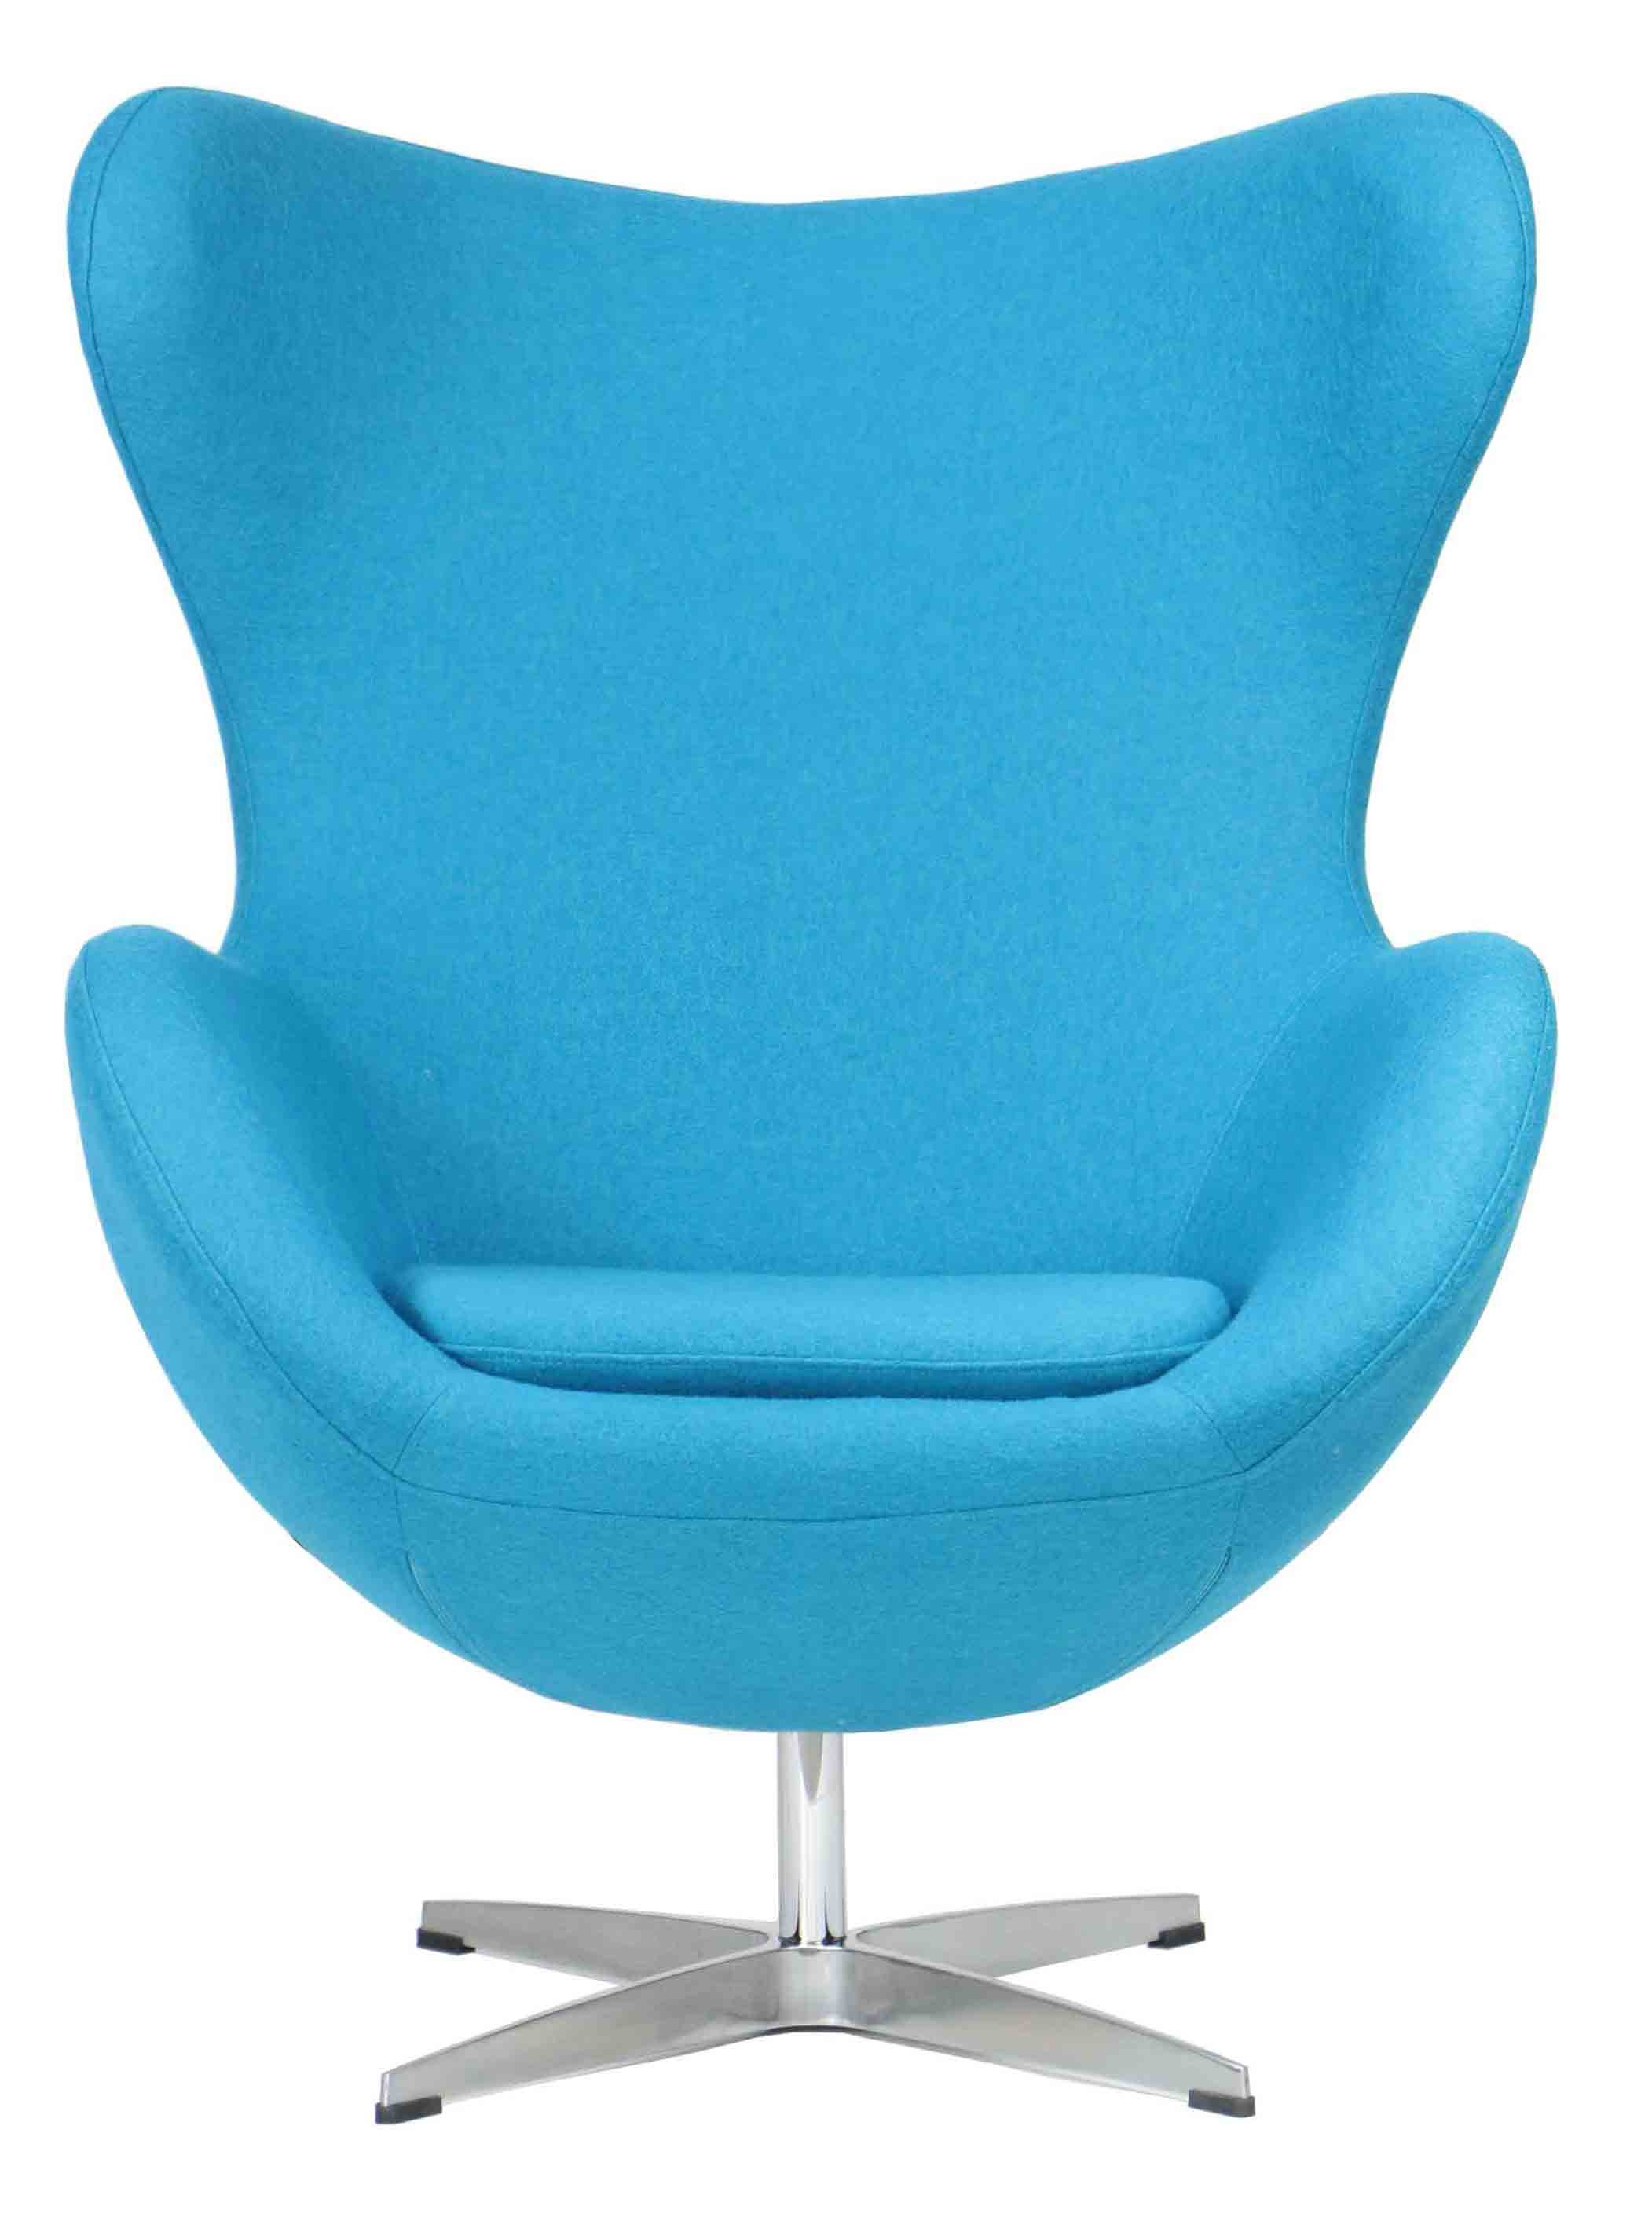 Designer Replica Egg Chair in Blue Furniture & Home Décor